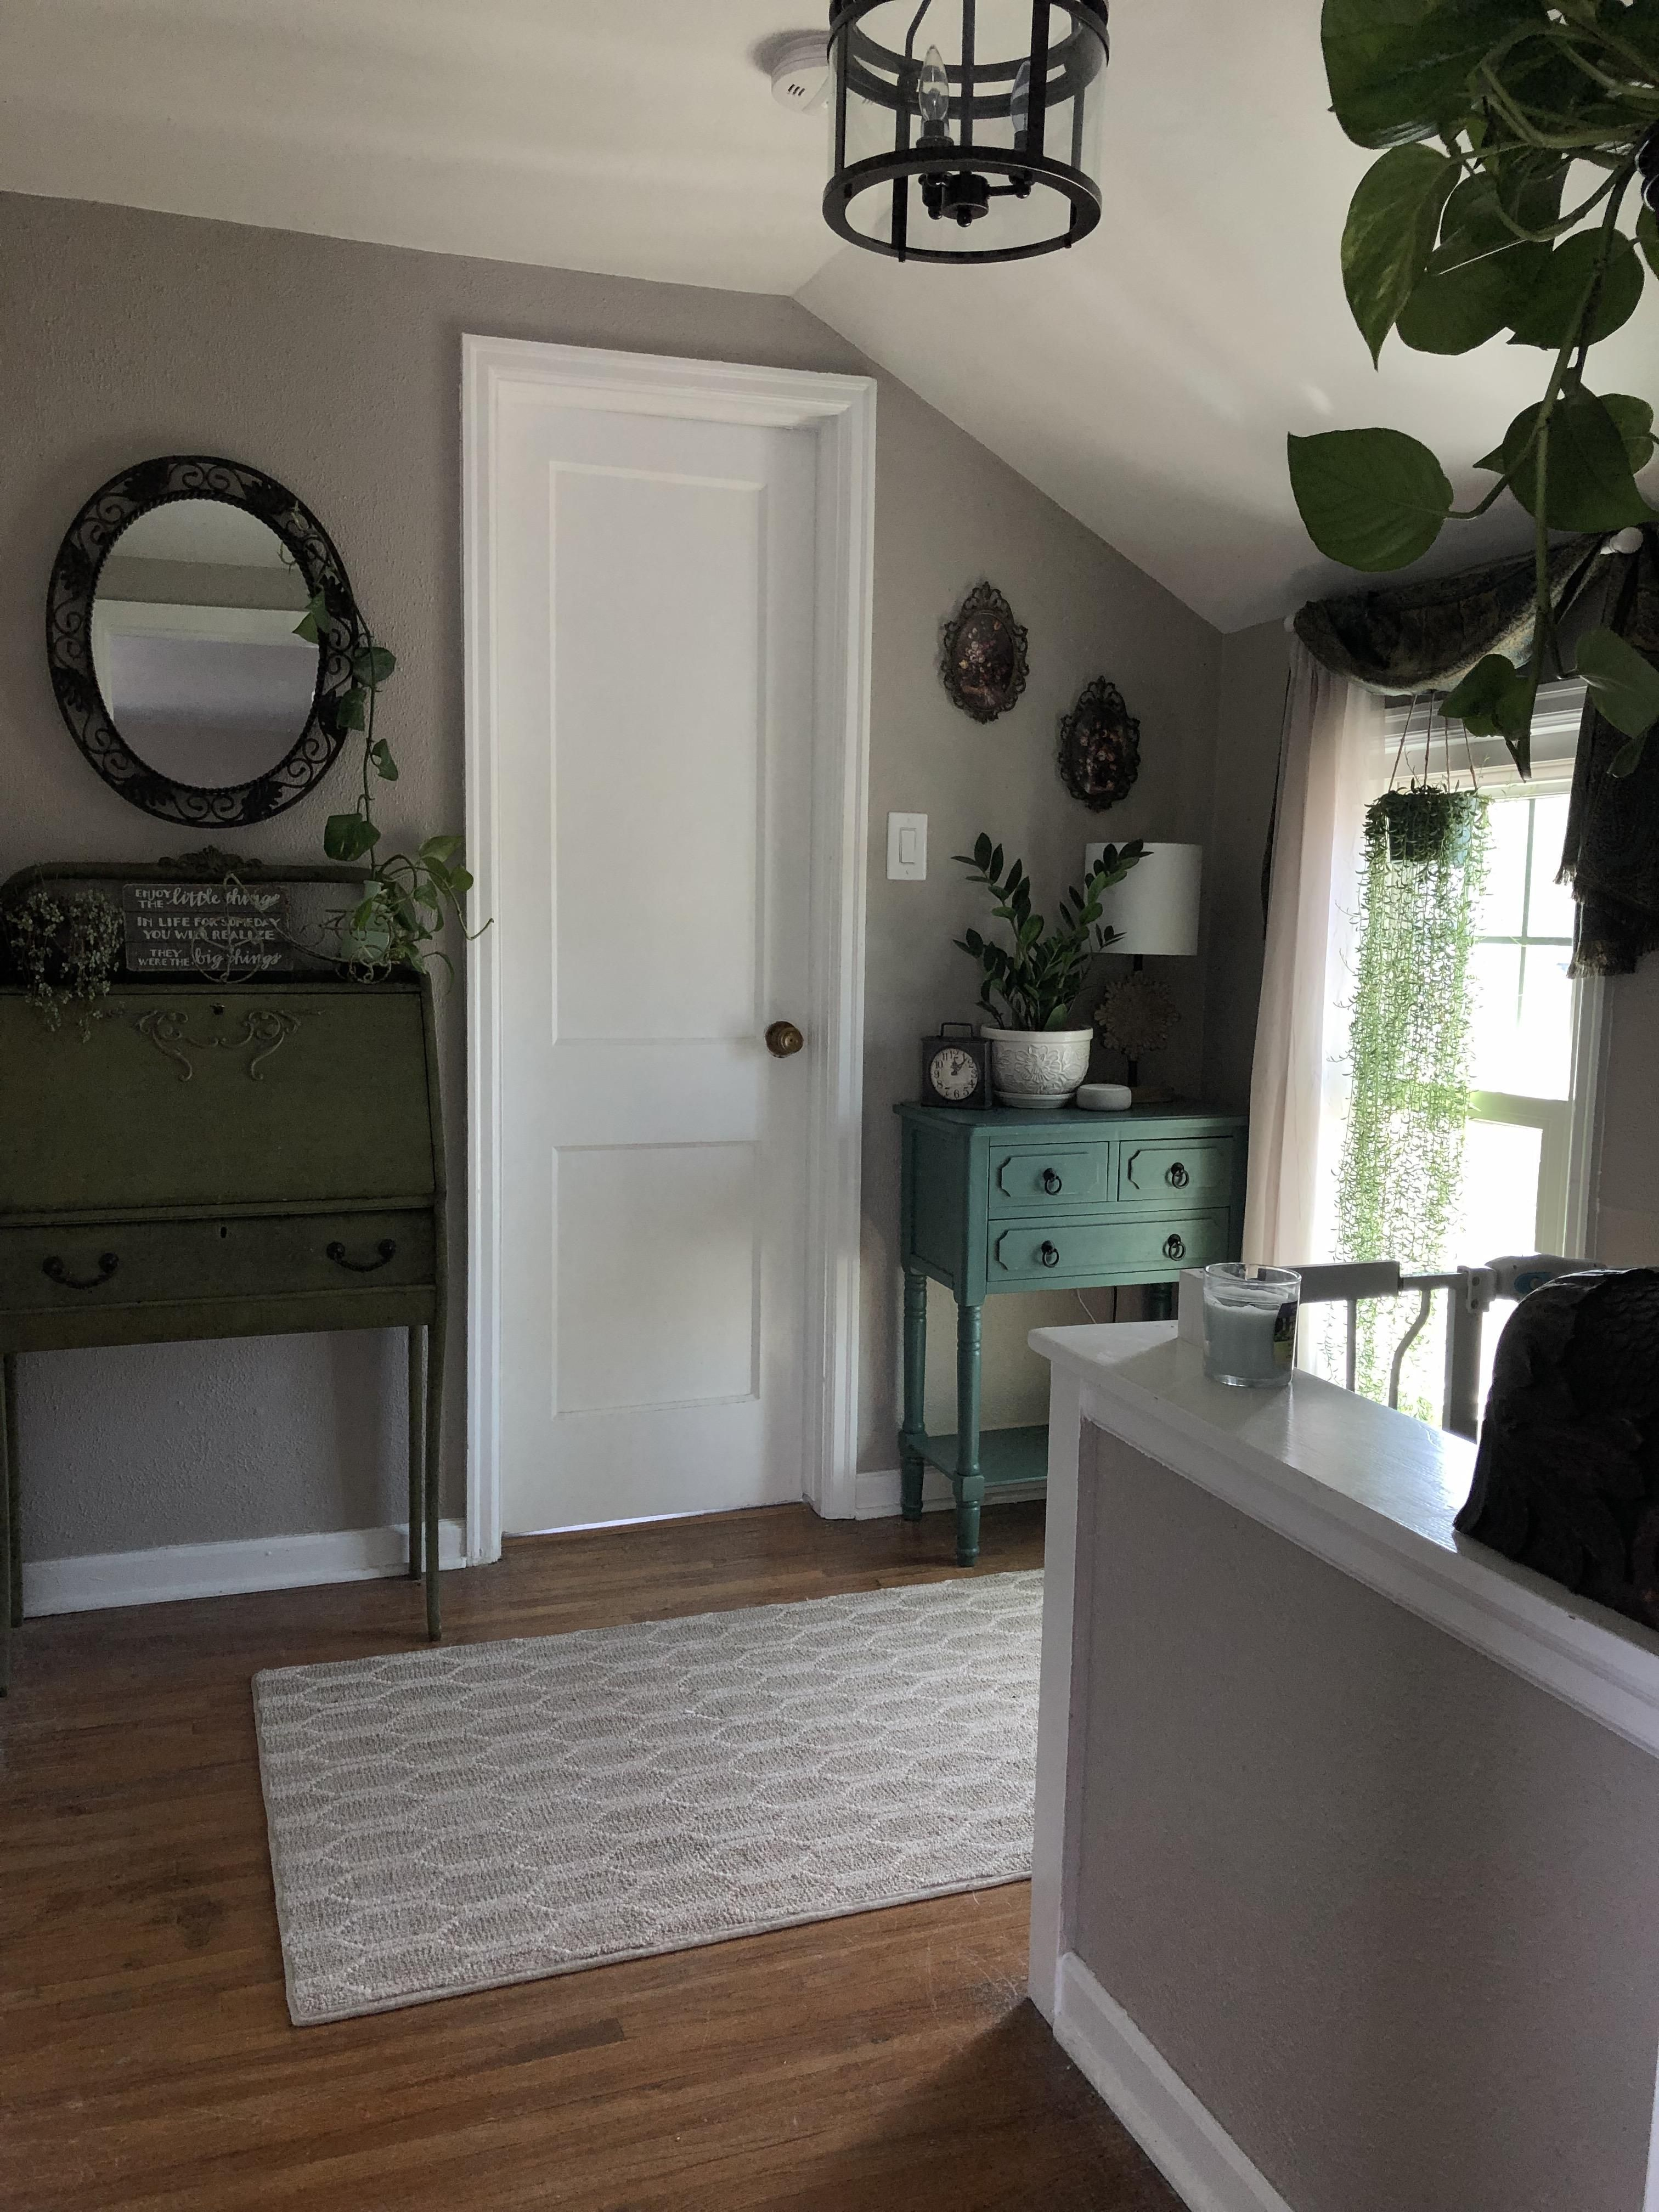 My Cozy Top Of The Stairs 7 Foot Ceilings Check Out Desigedecors Com To Get More Inspiration Interiordesig Home Interior Design Interior Dsign House Interior